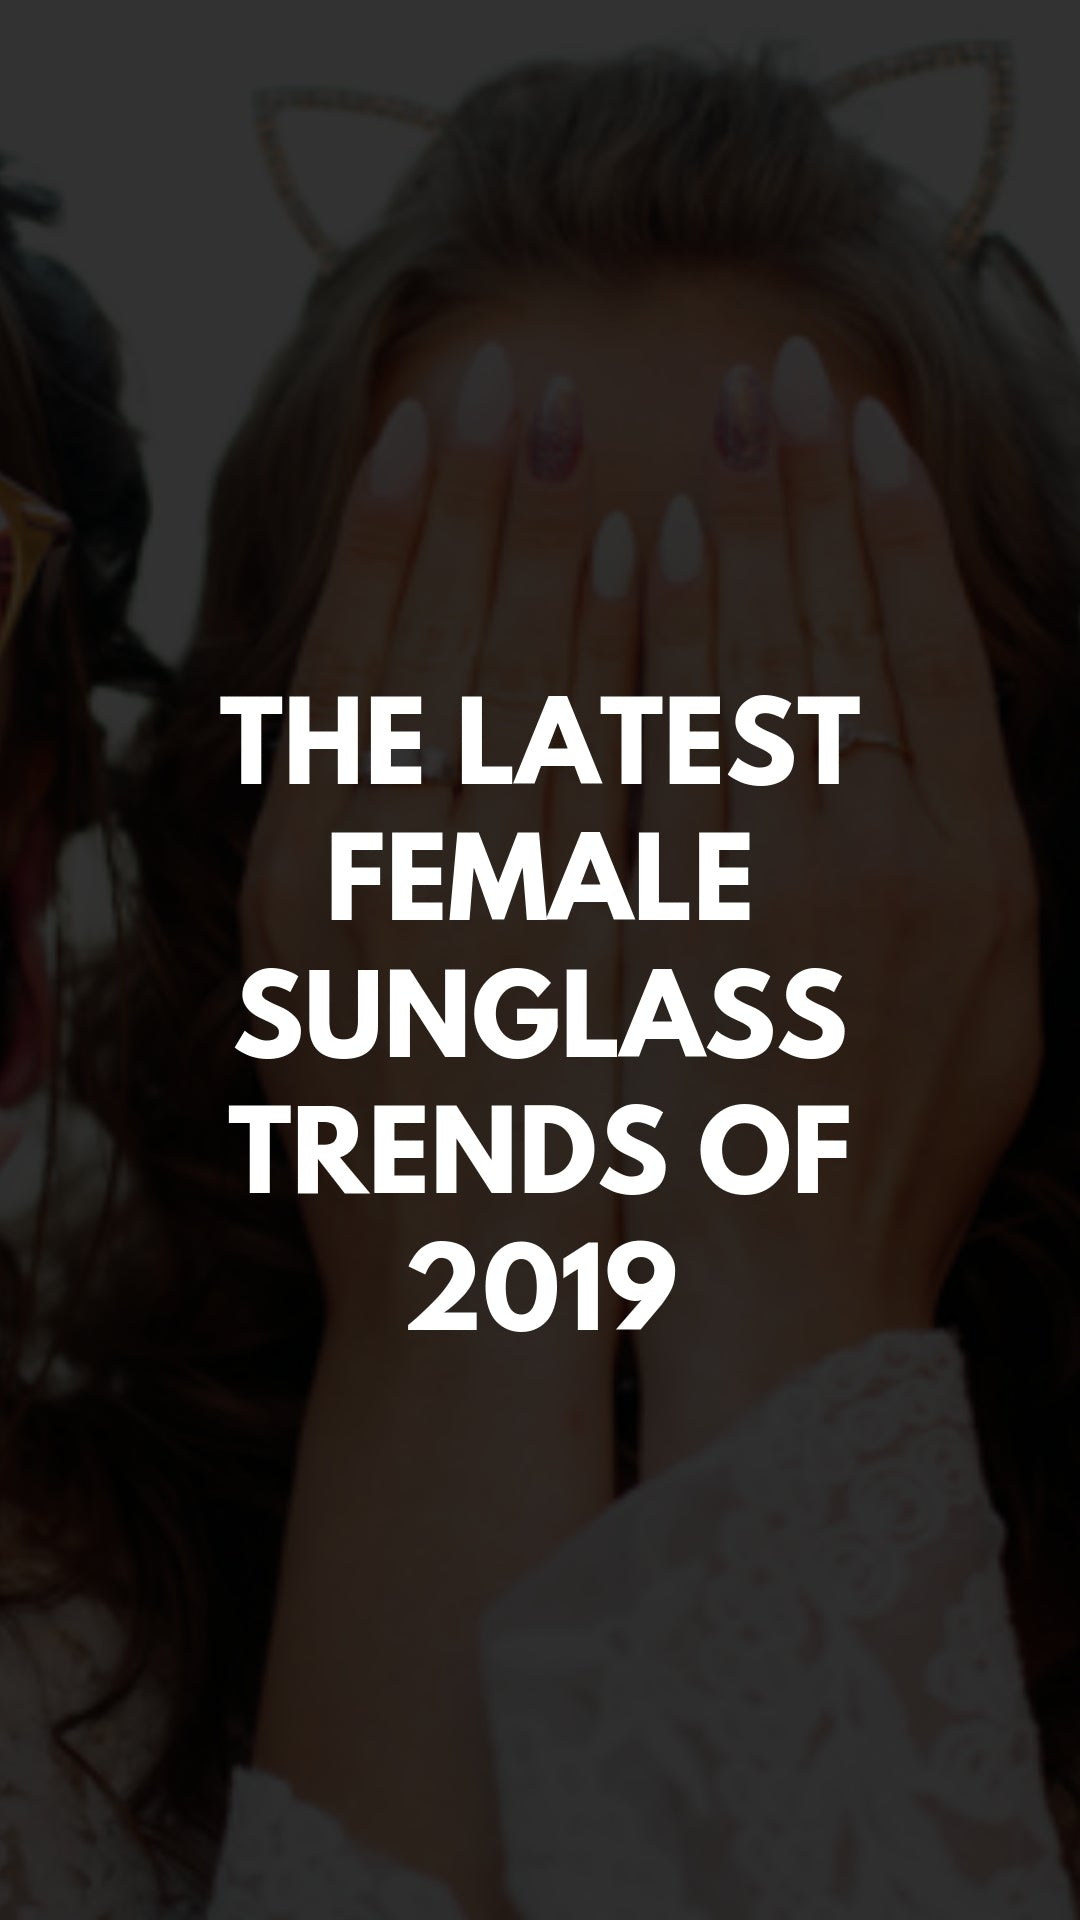 Sunglass trends for women